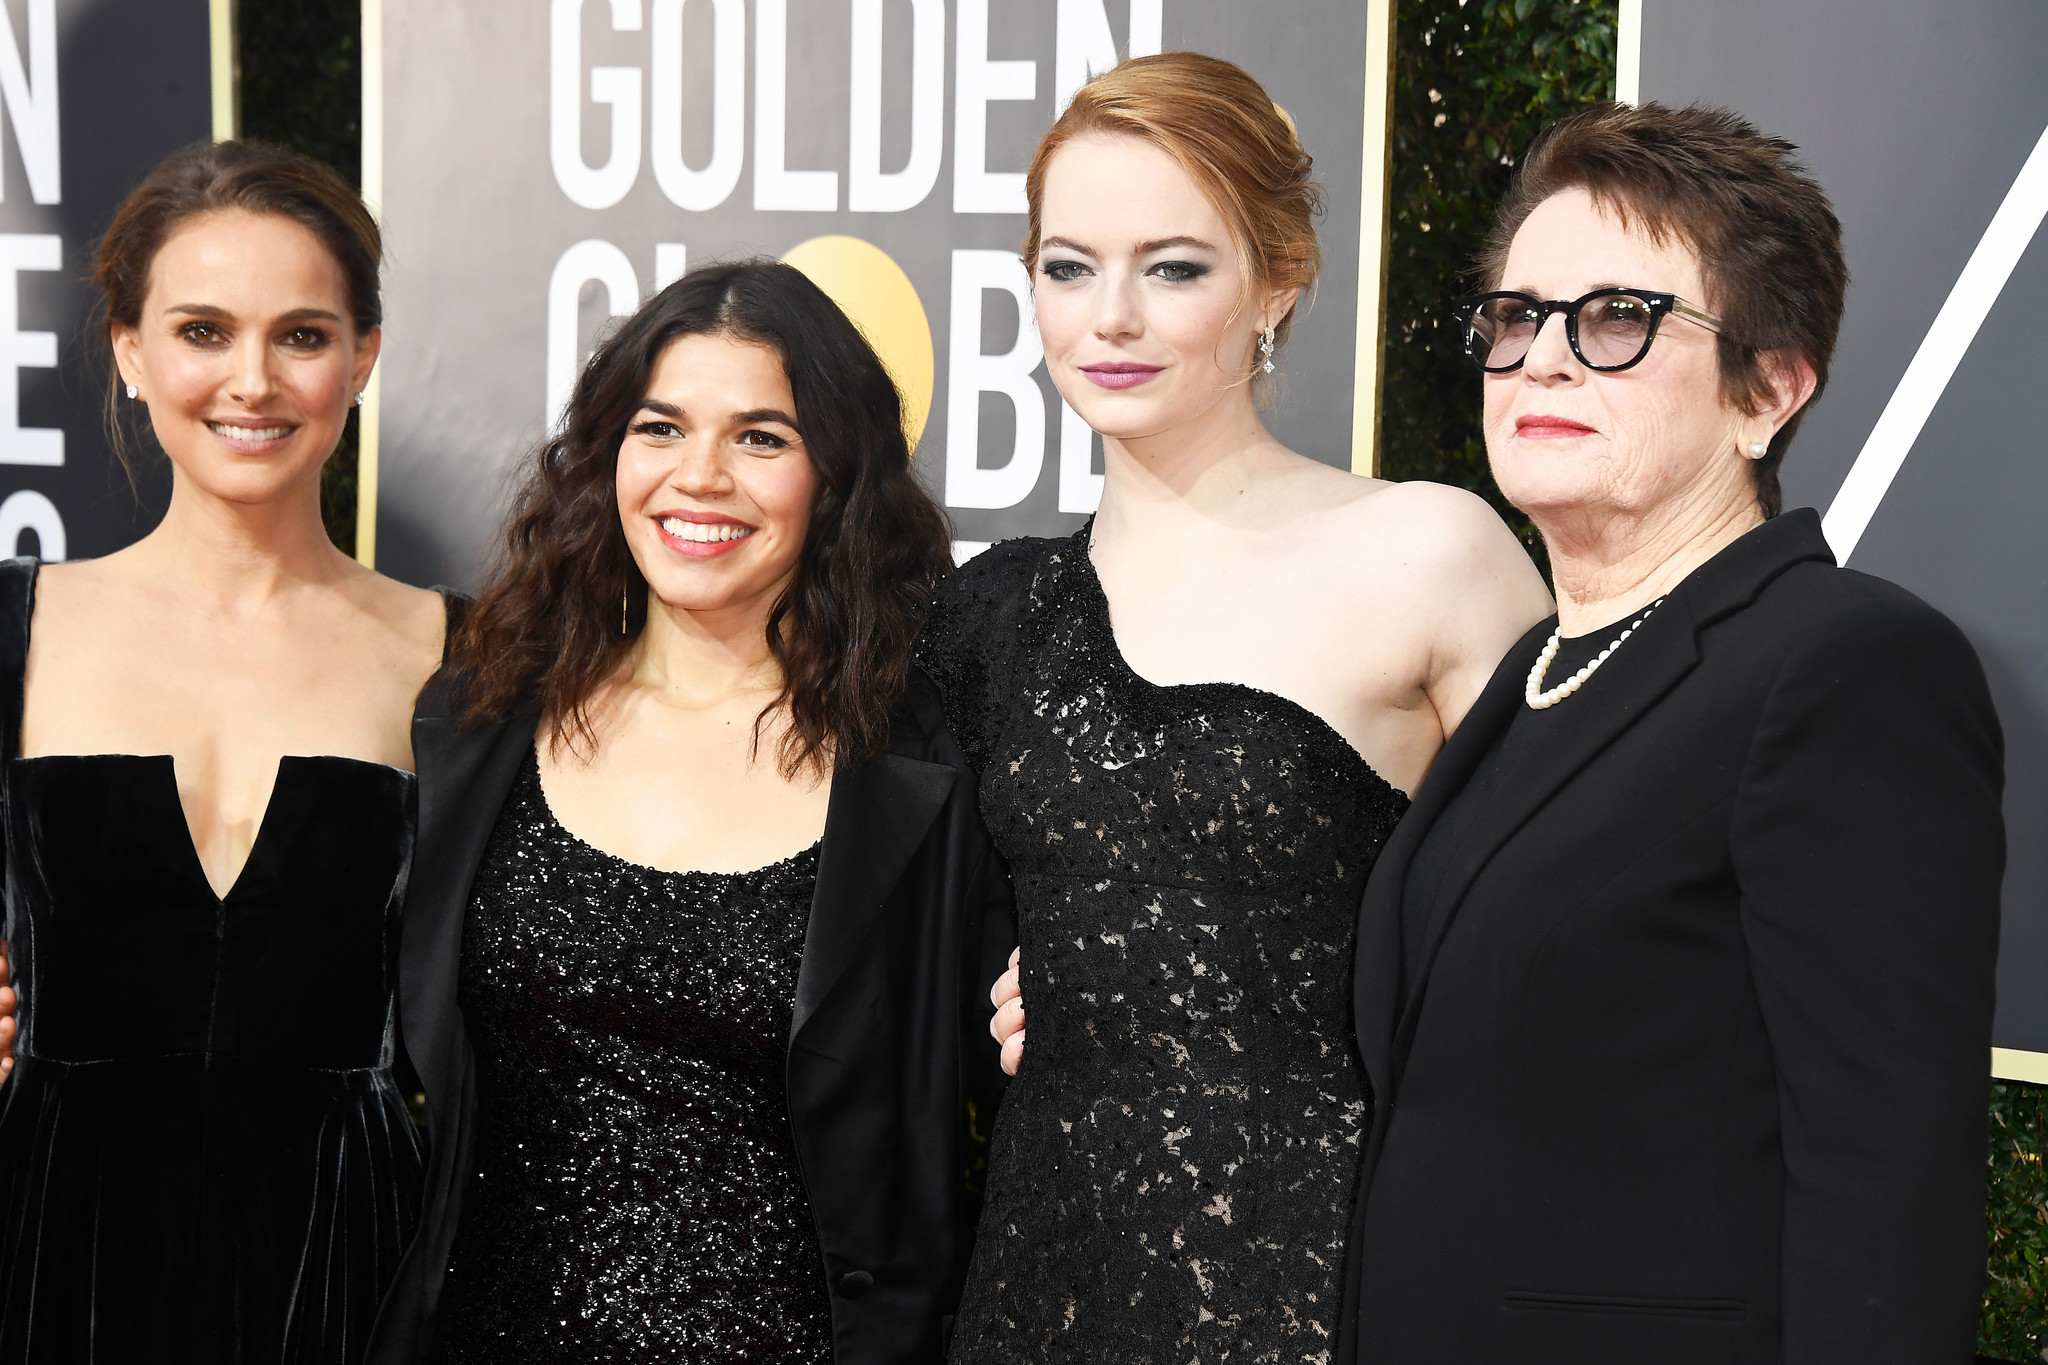 Image result for golden globes 2018 red carpet